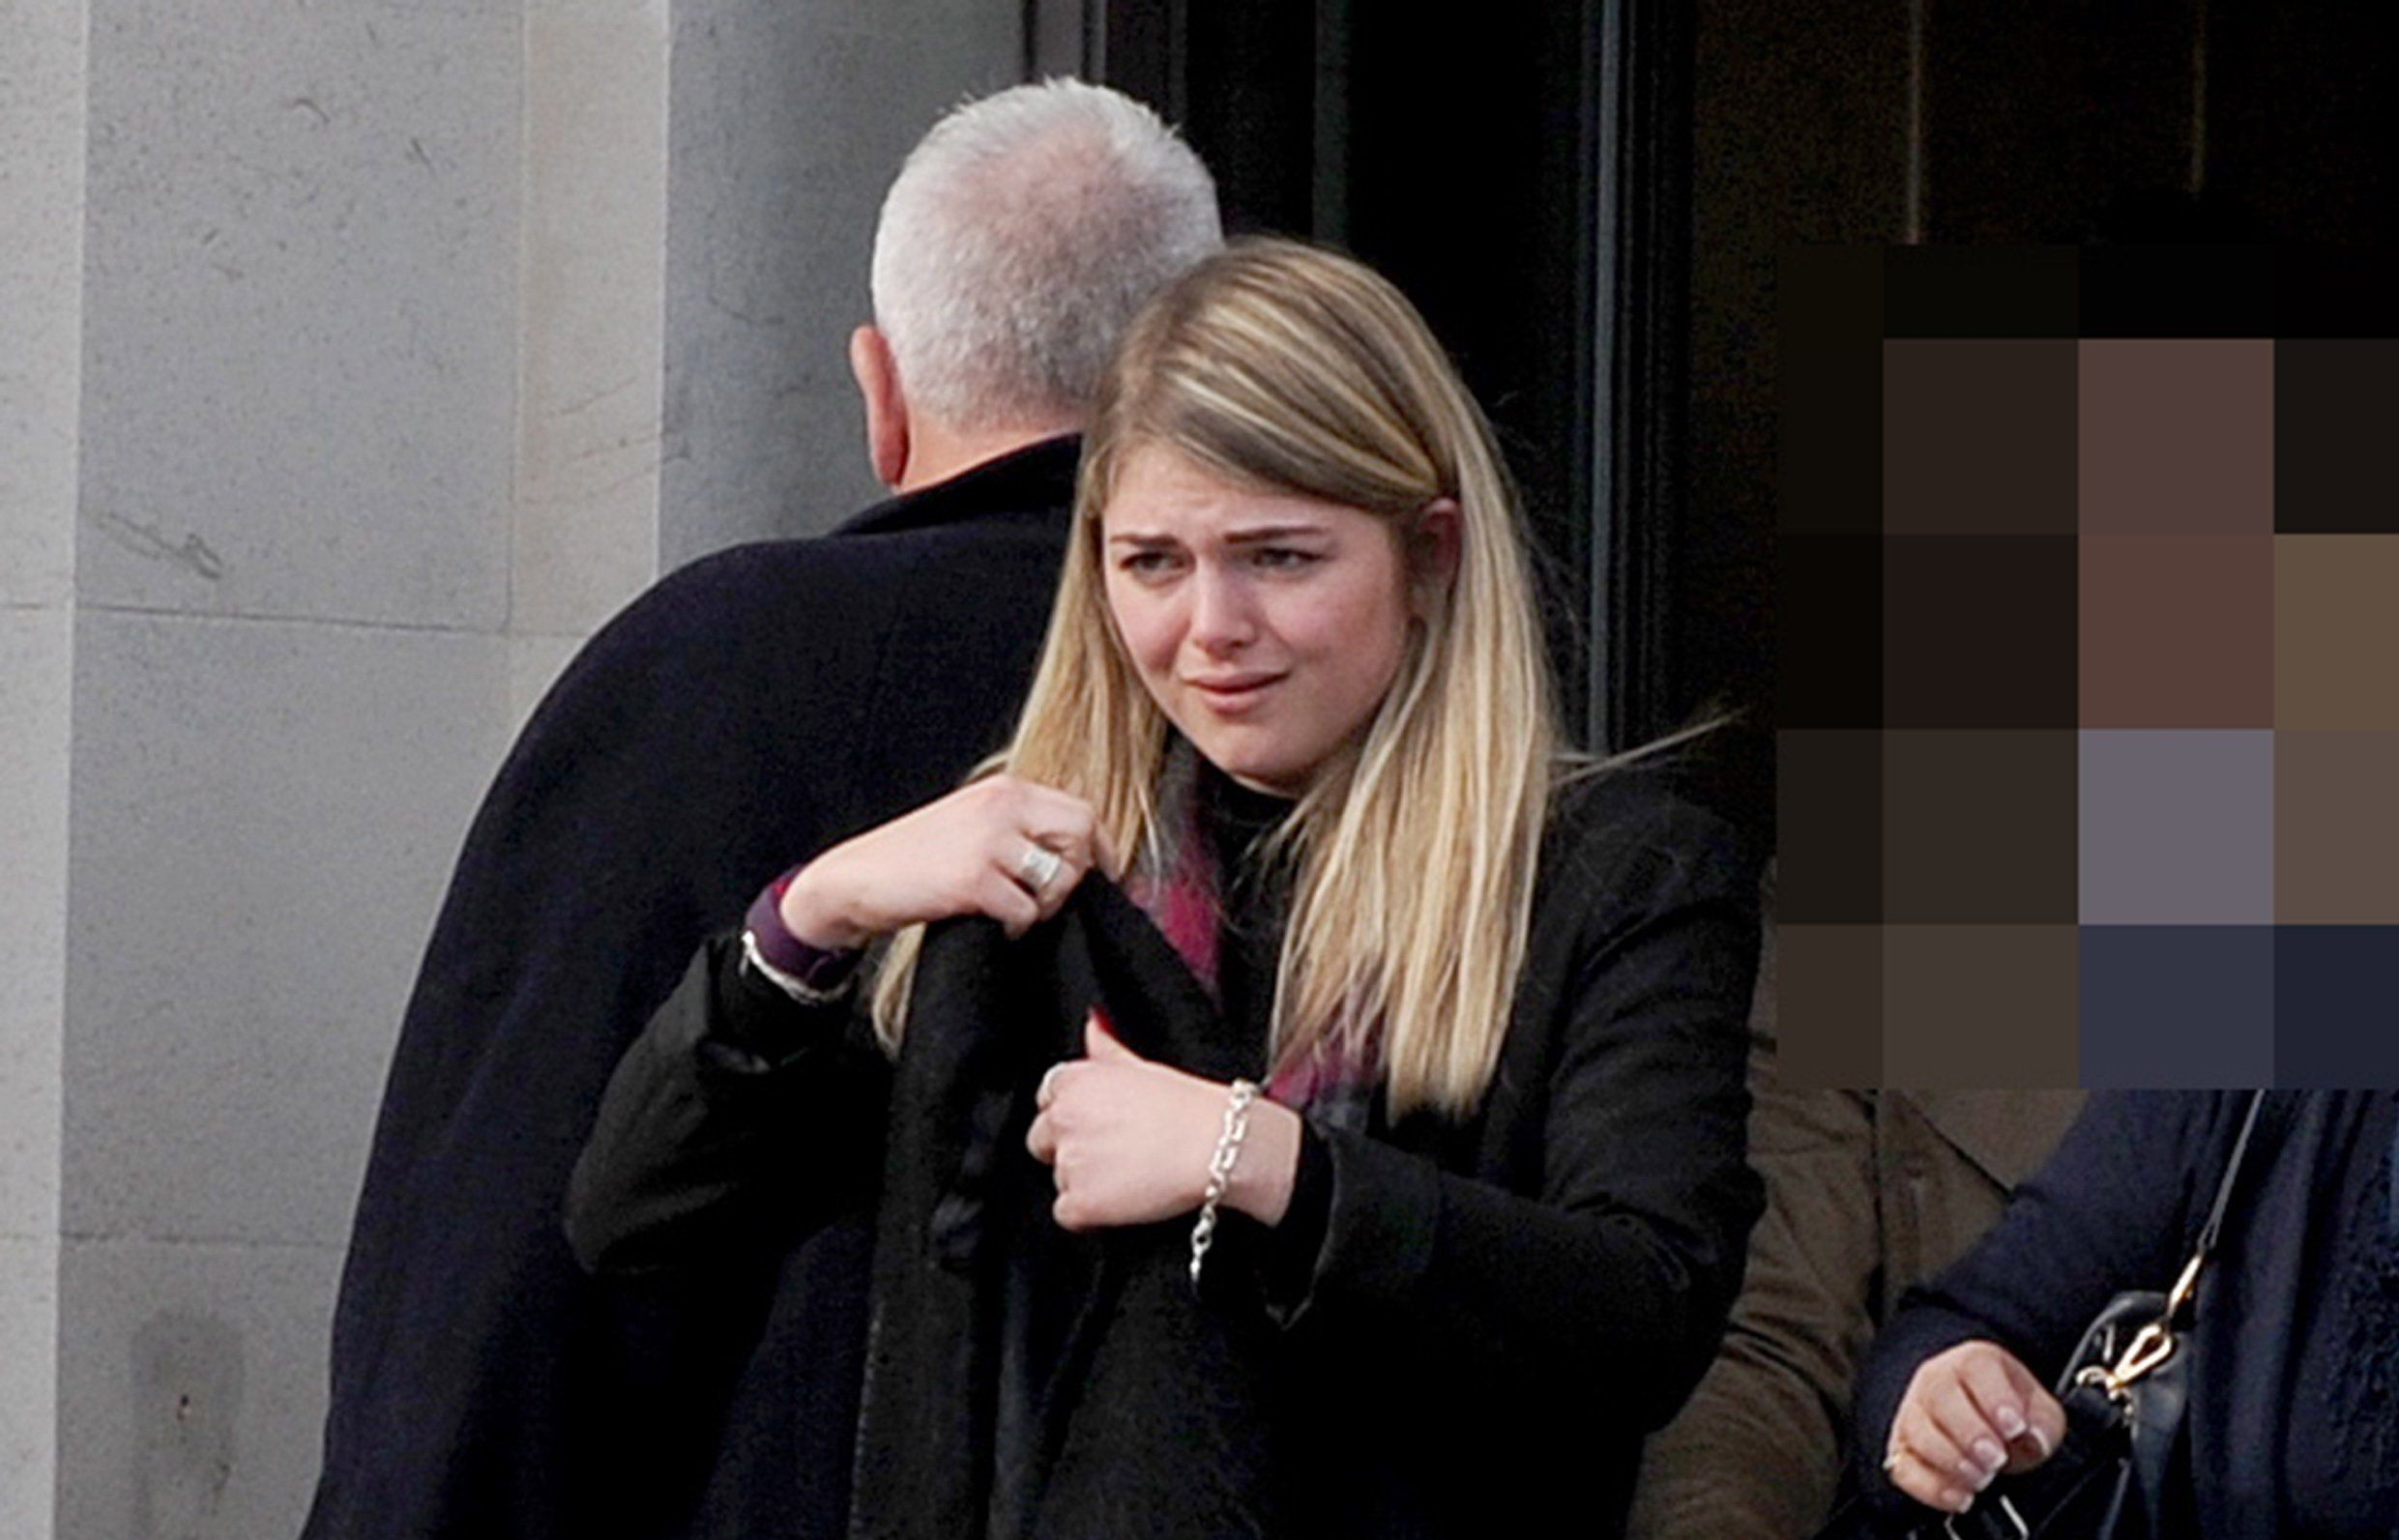 "Pictured: Emily Davis, 21, outside Portsmouth Magistrates' Court. A young motorist caught parking with her dead grandmother's blue badge told investigators: ""I'm using it in her honour."" Emily Davis, 21, was stopped while using the disabled person's badge to park in her Mini One in St George's Square, Portsea, Hants. Quizzed by a Portsmouth City Council investigator she first claimed her grandmother was shopping nearby. But in truth, her grandmother Elizabeth Davis died in September 2014 ñ nearly a year before Davis was caught. Now she has been fined £750 with an extra £360.20 to pay on top in costs. SEE OUR COPY FOR MORE DETAILS. © Portsmouth News/Solent News & Photo Agency UK +44 (0) 2380 458800"